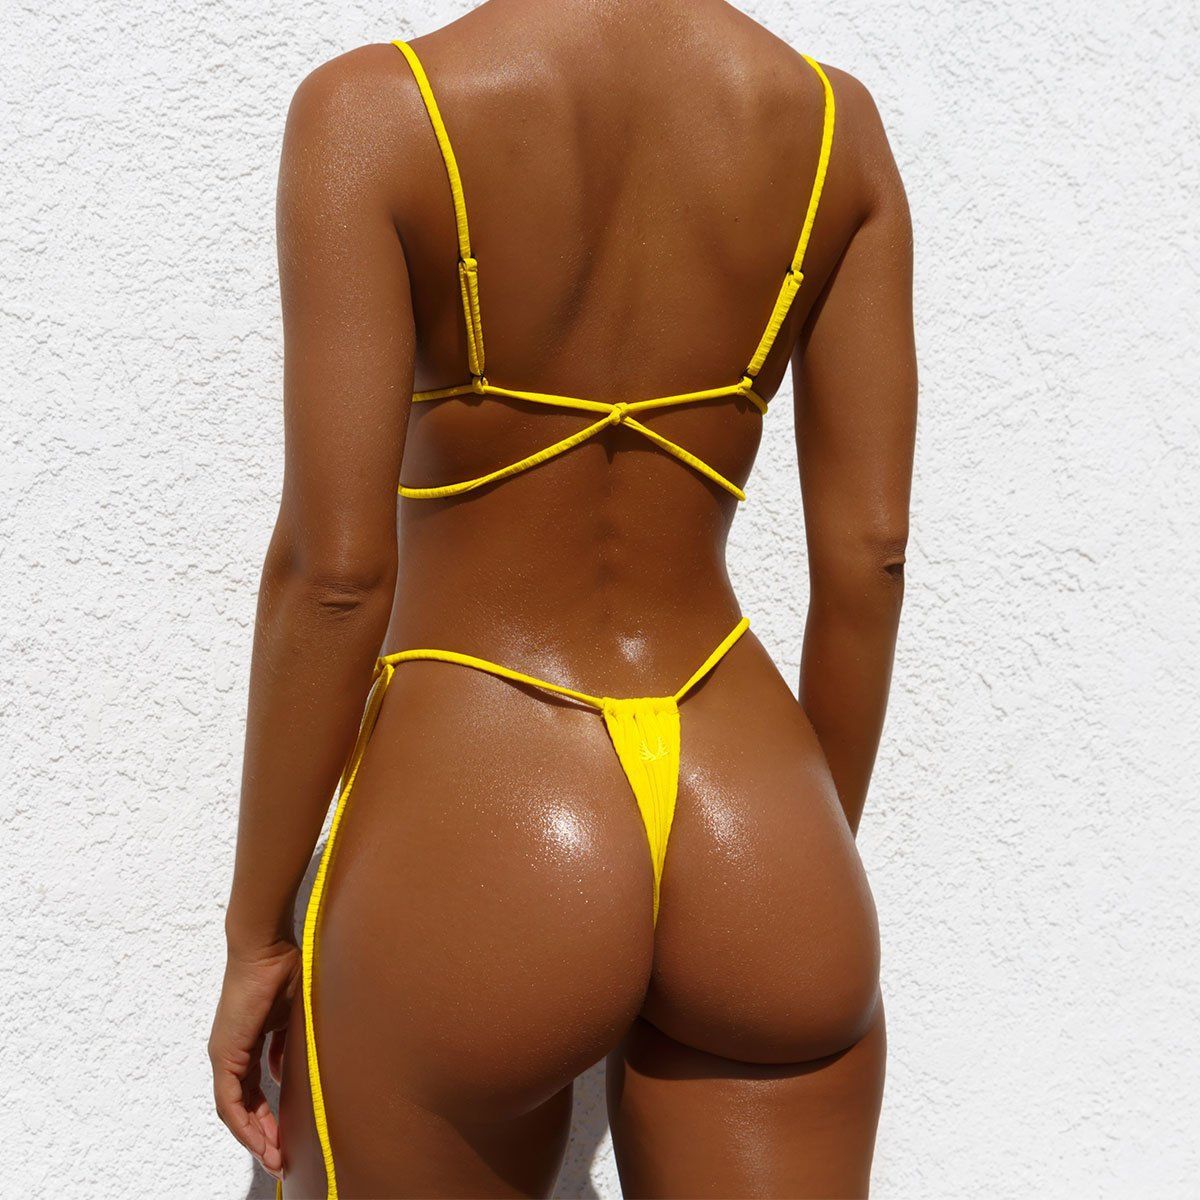 2020 New HJ Hot Sale High Cut Customized Swimsuit Lady custom Sexy Bandage String Bikini  Sexy Lady Swimsuit